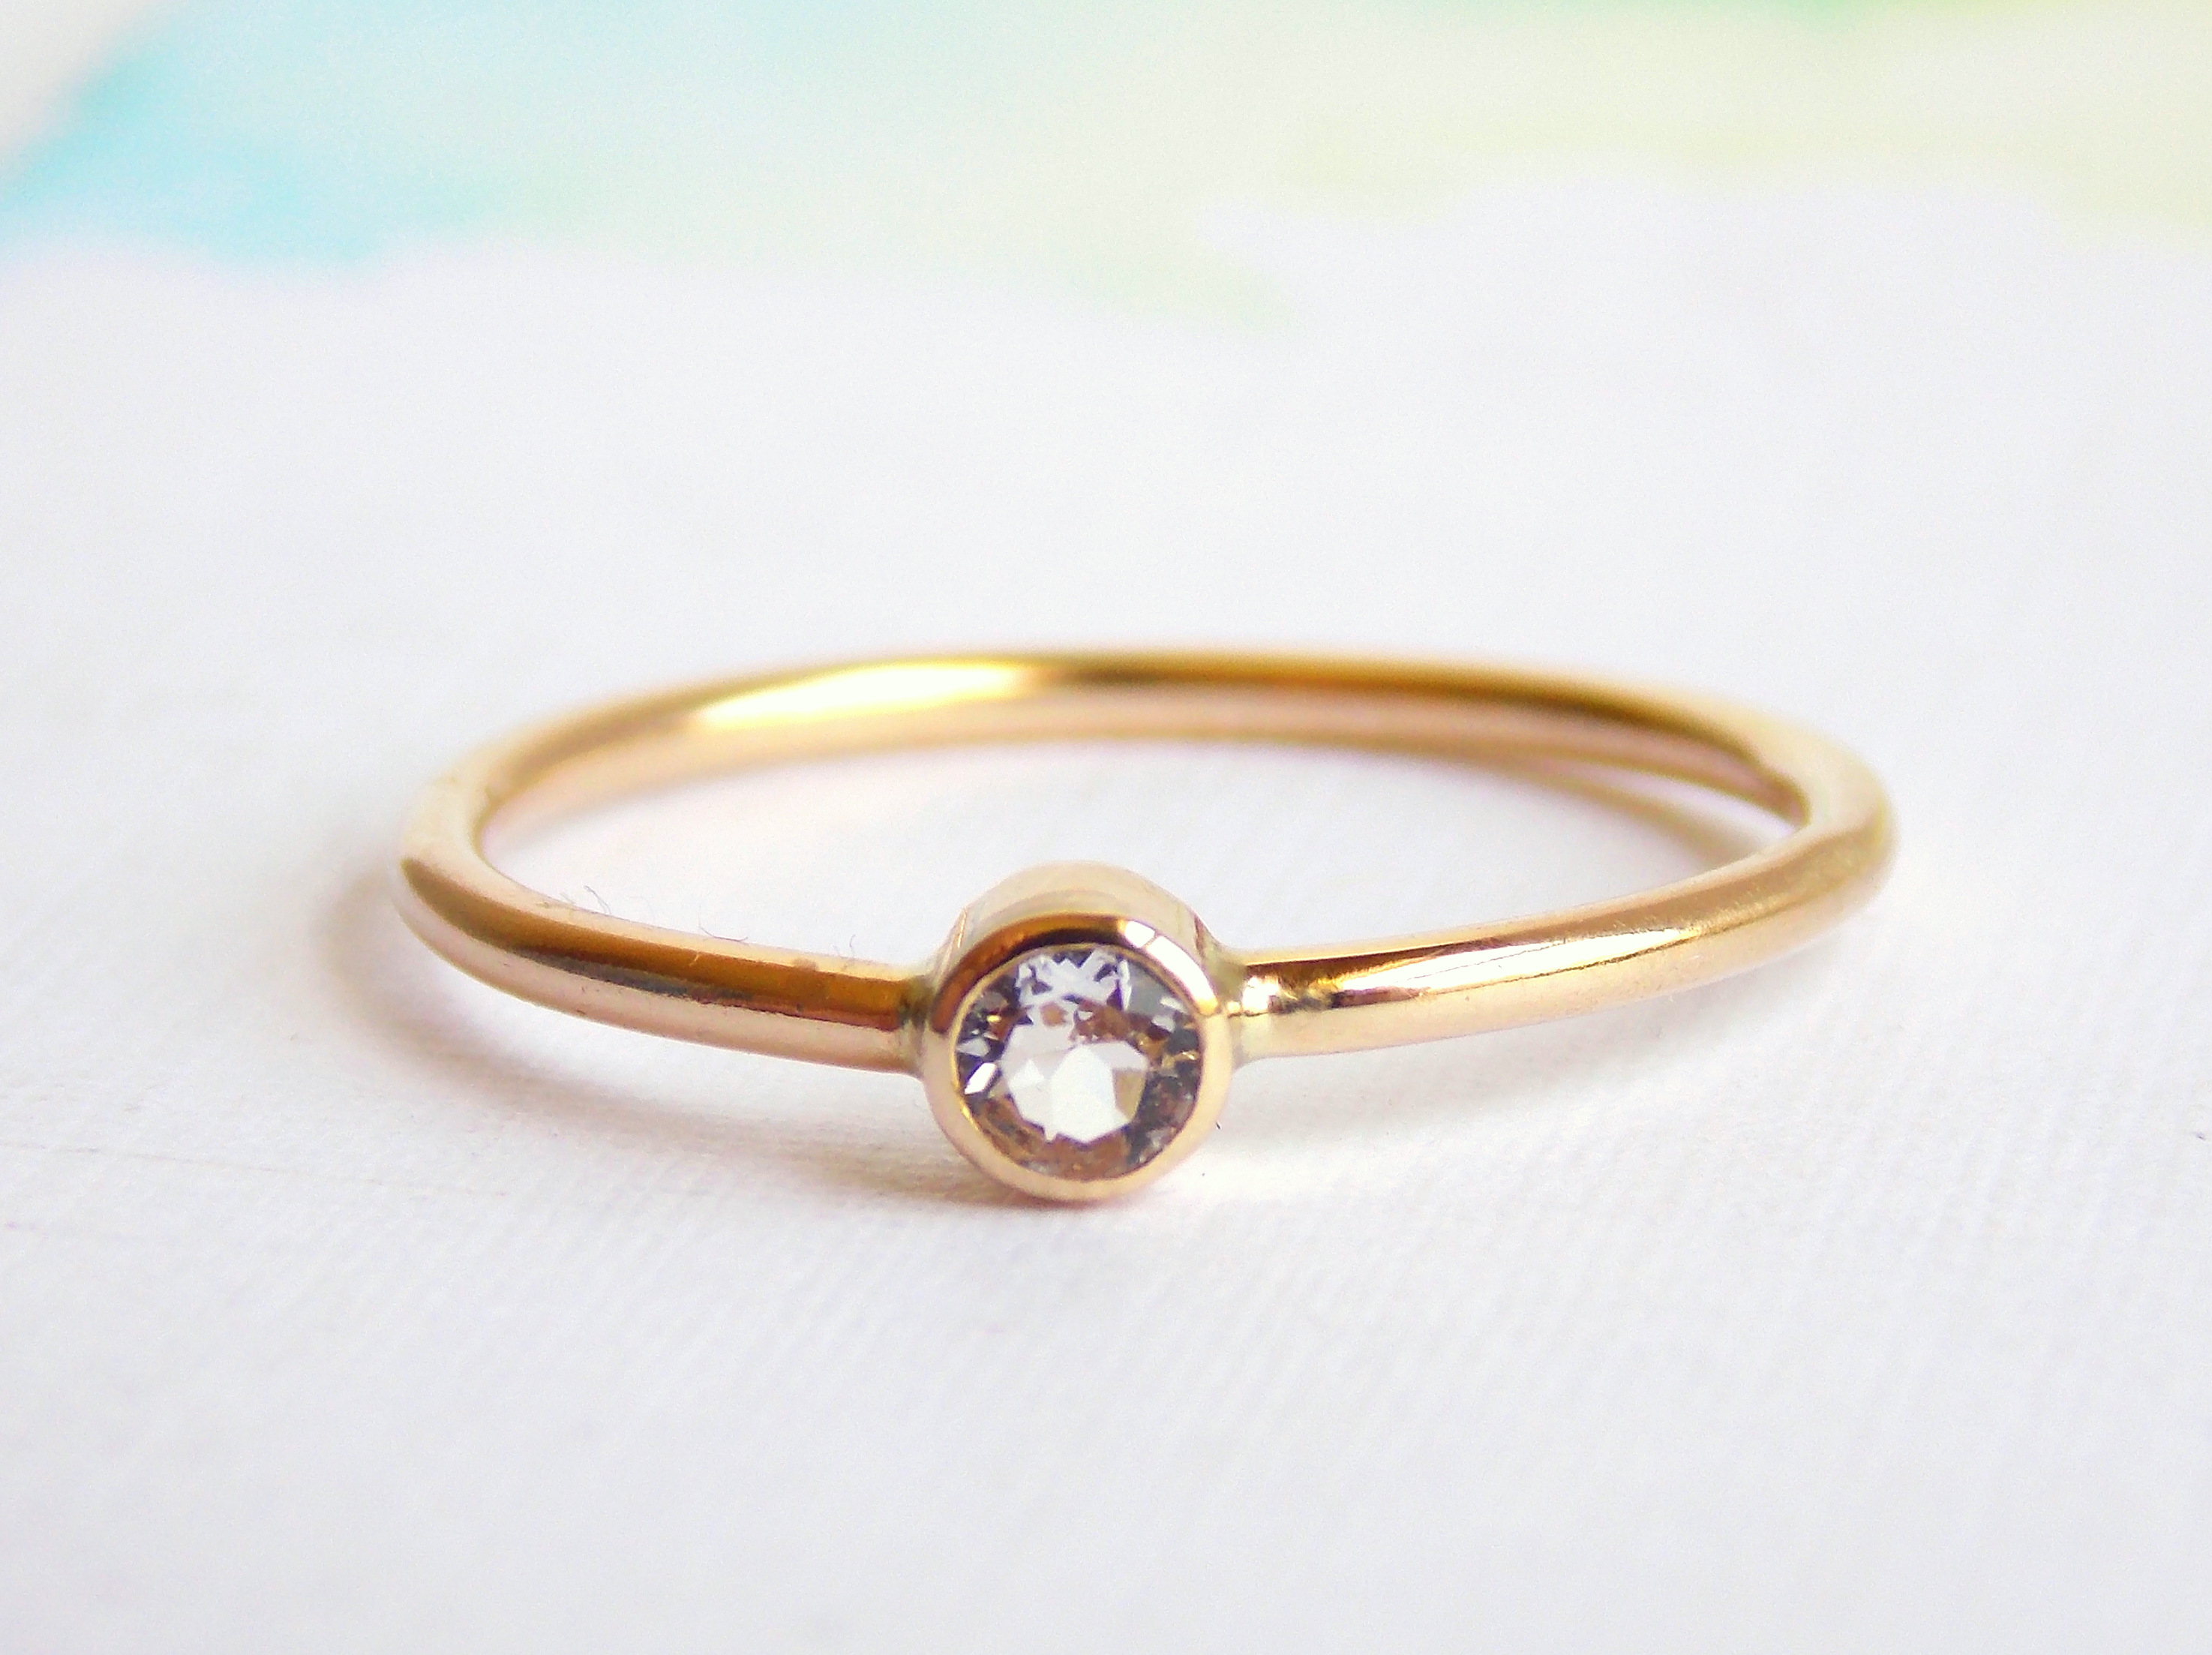 signet jewellery products alix ringedit yang a gold ring